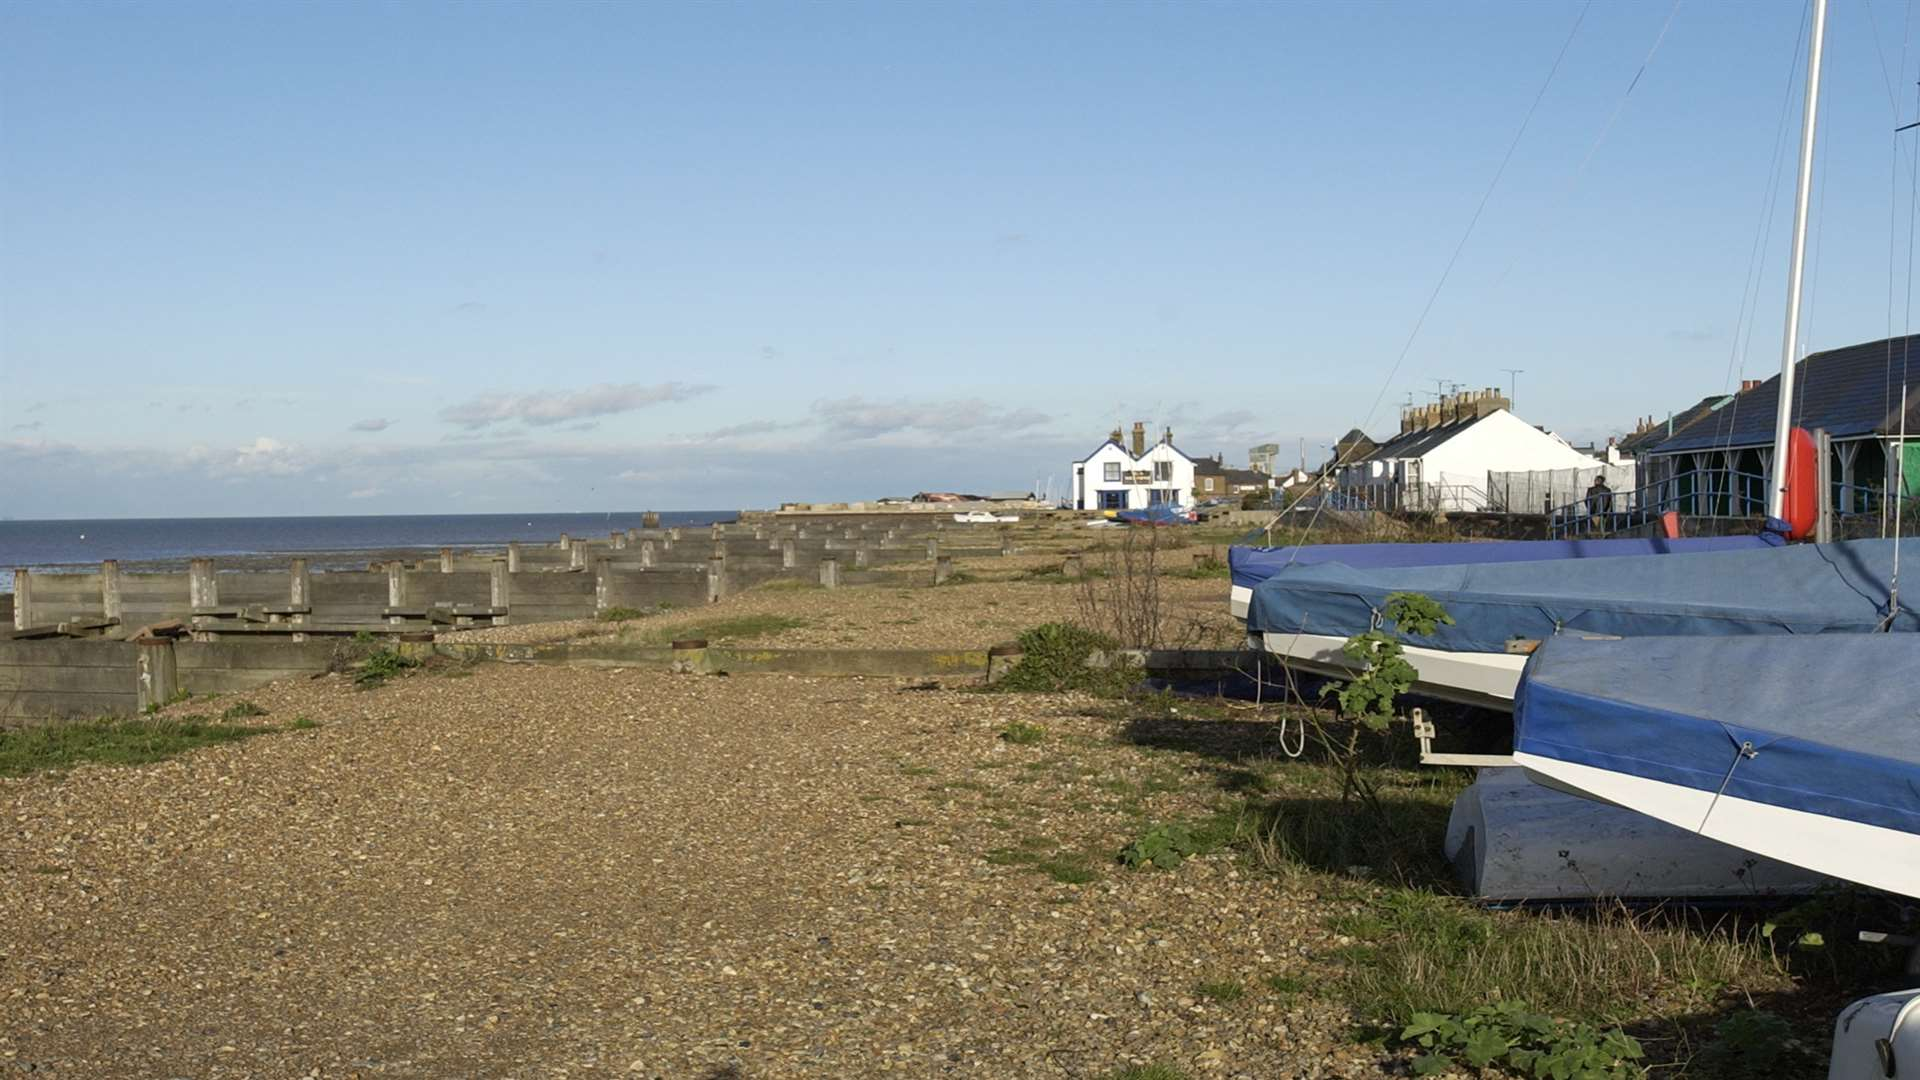 Whitstable has proved attractive to second home buyers